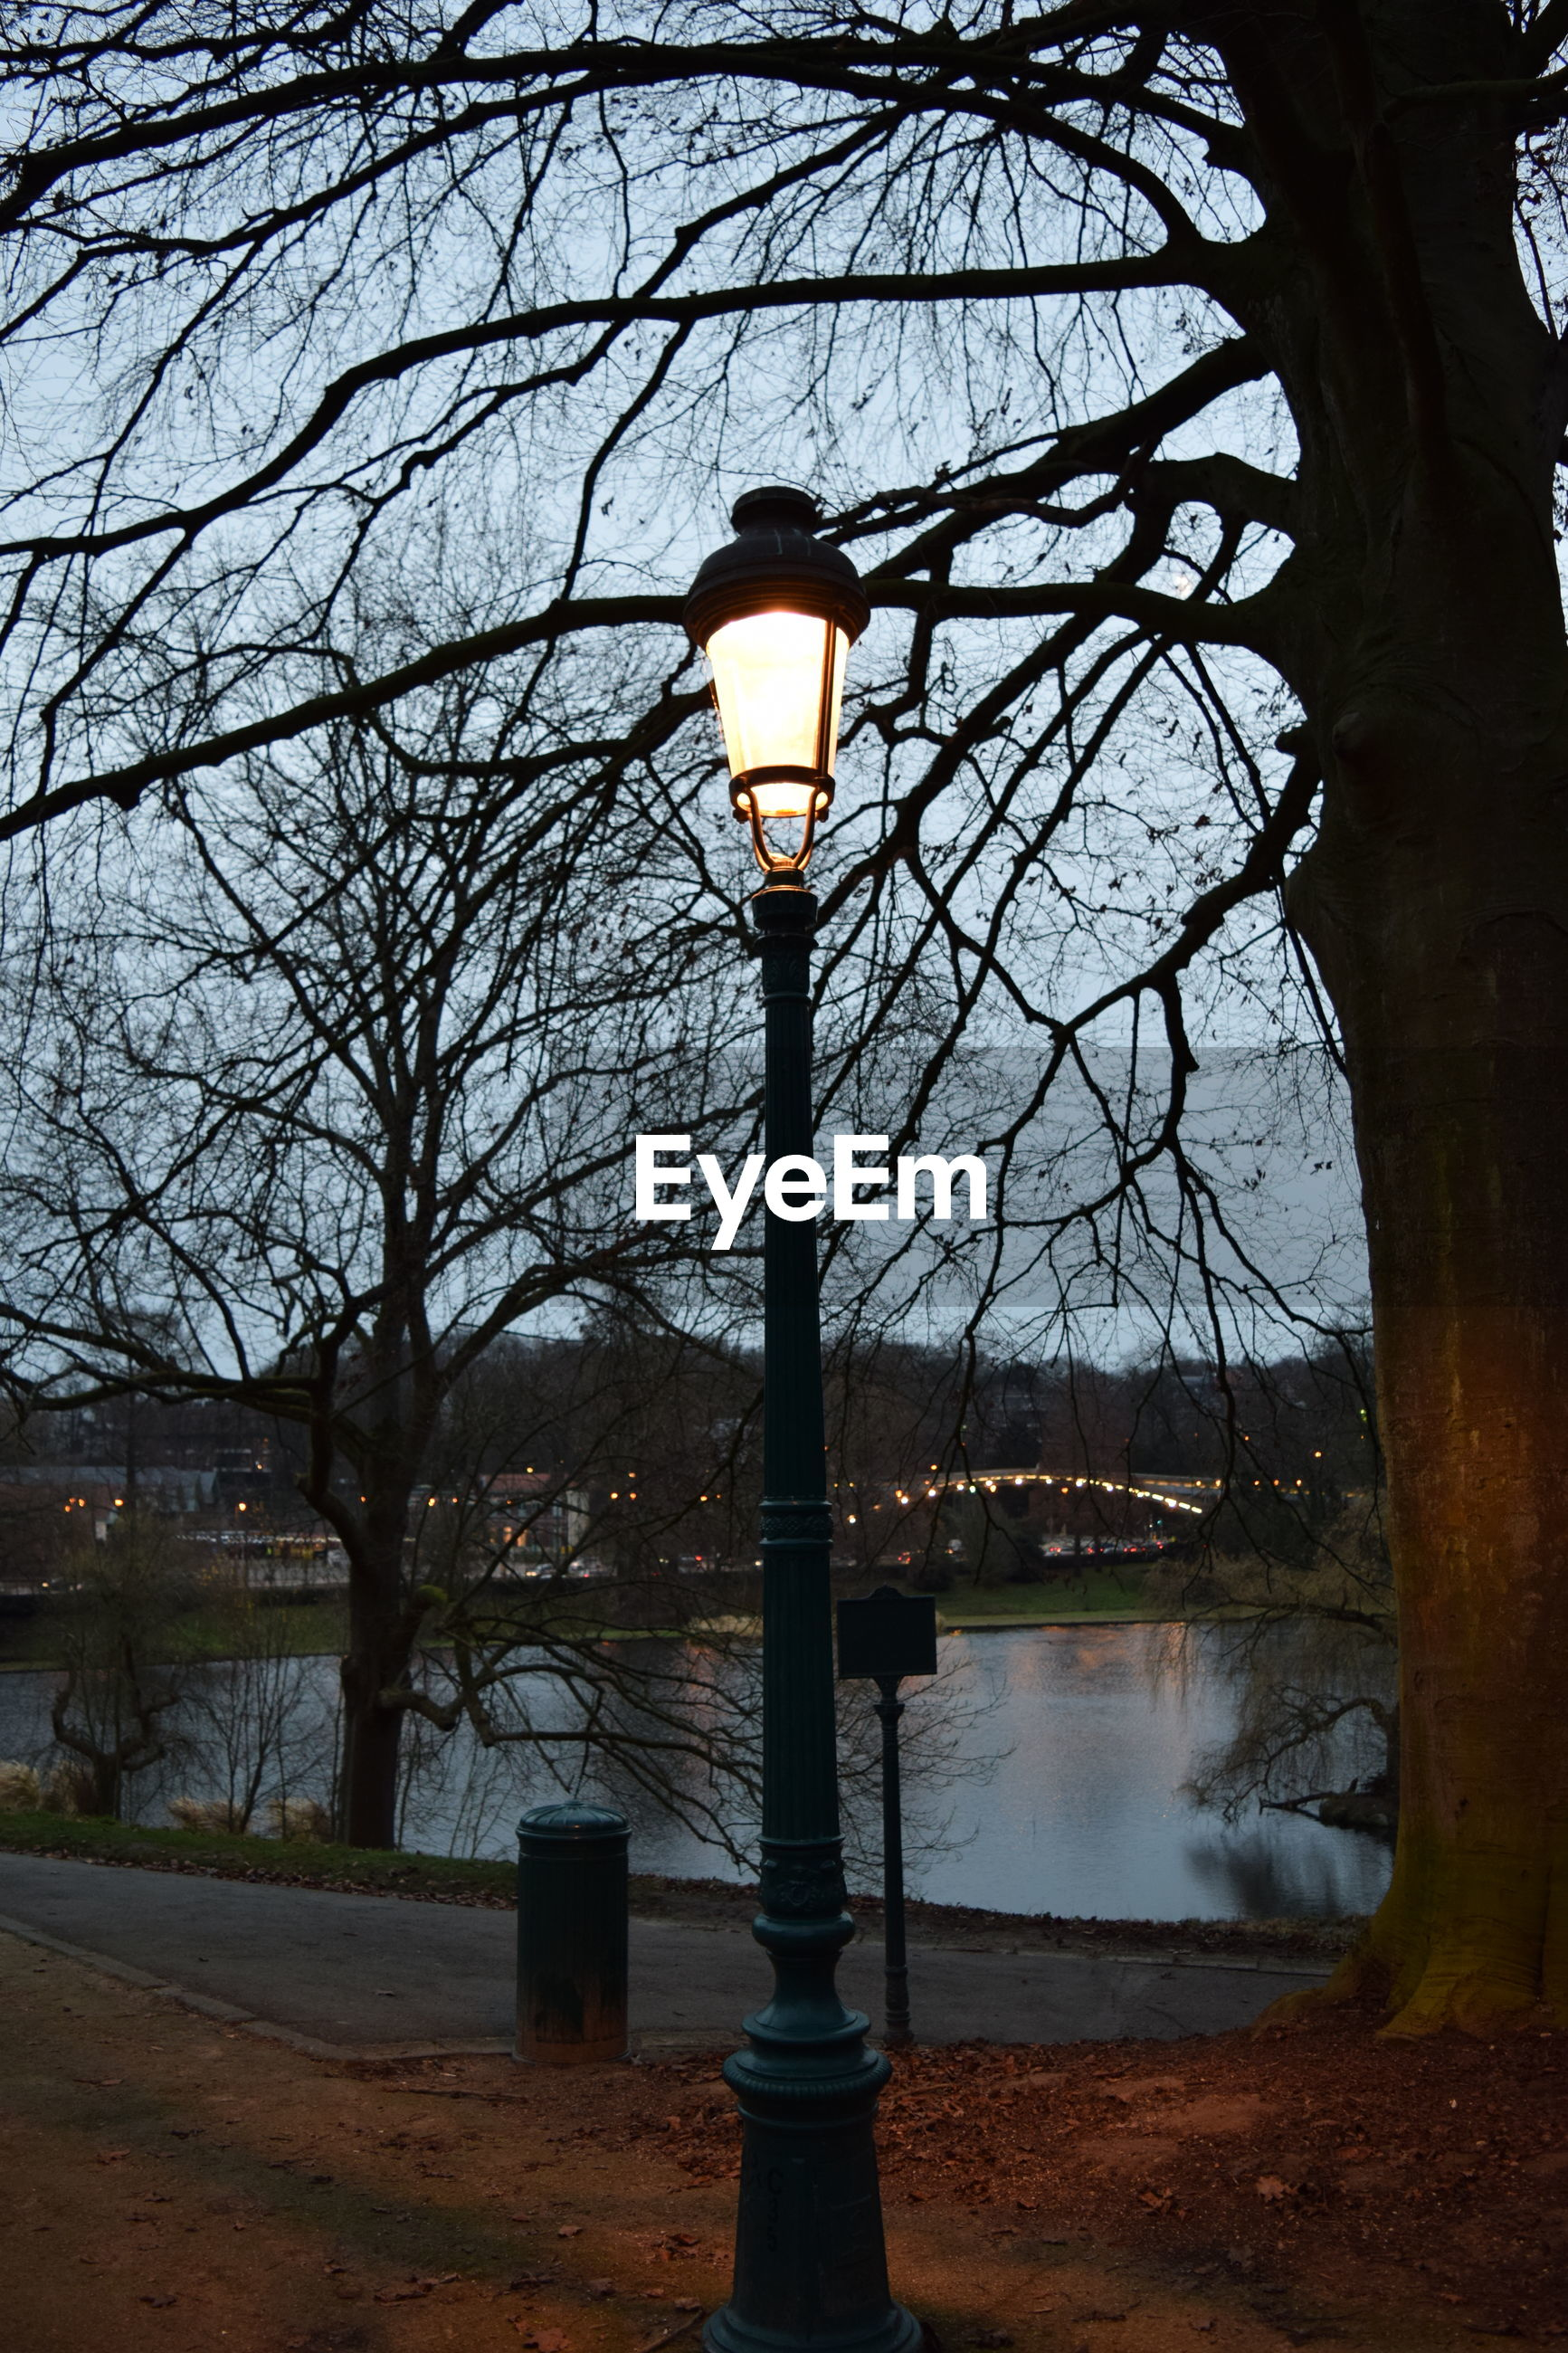 Low angle view of illuminated street light against bare tree